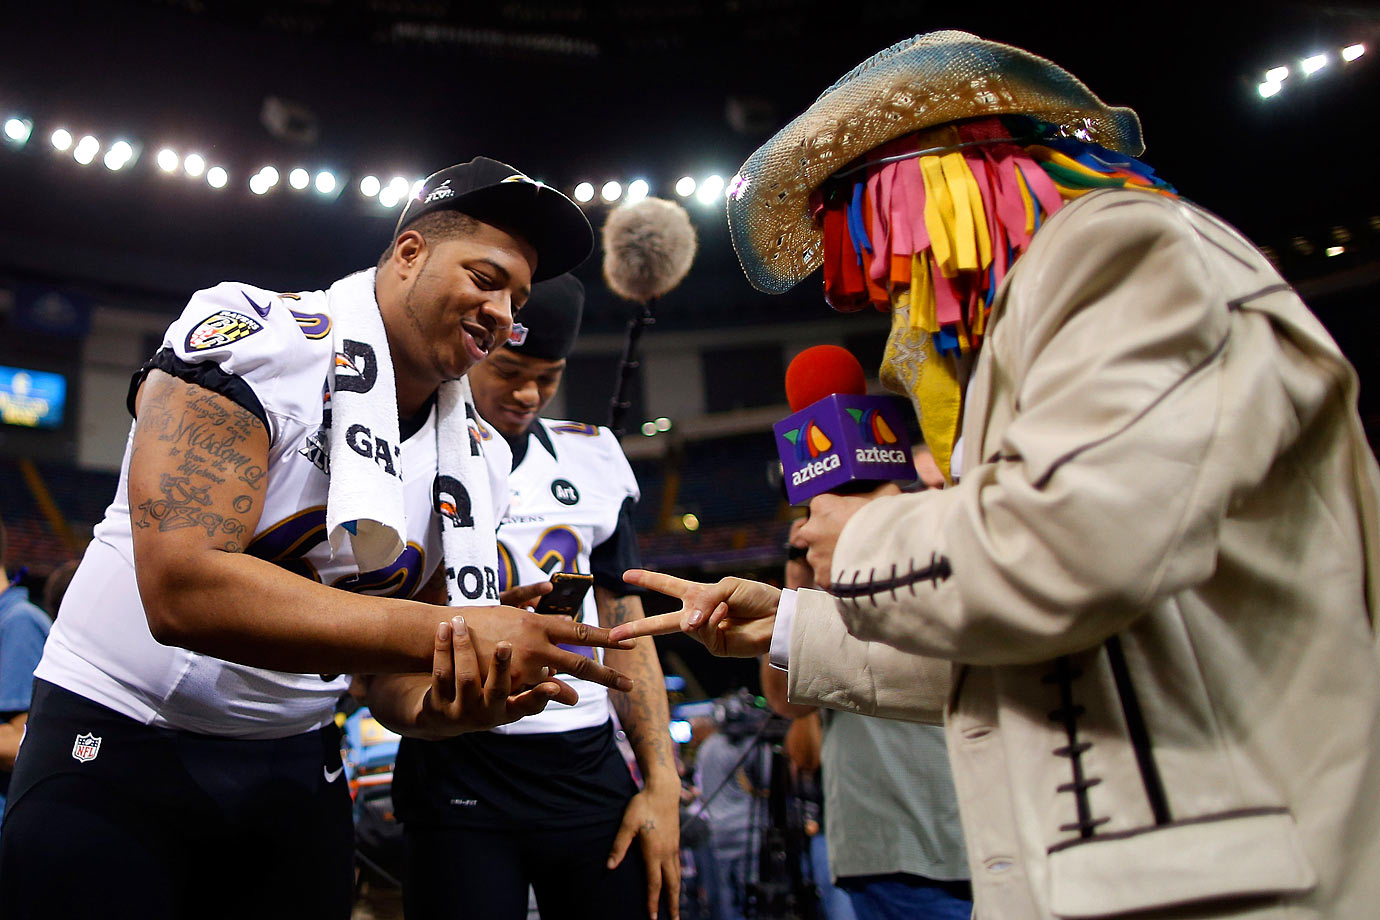 Ravens offensive lineman Antoine McClain plays rock, paper, scissors during Super Bowl XLVII Media Day in New Orleans.